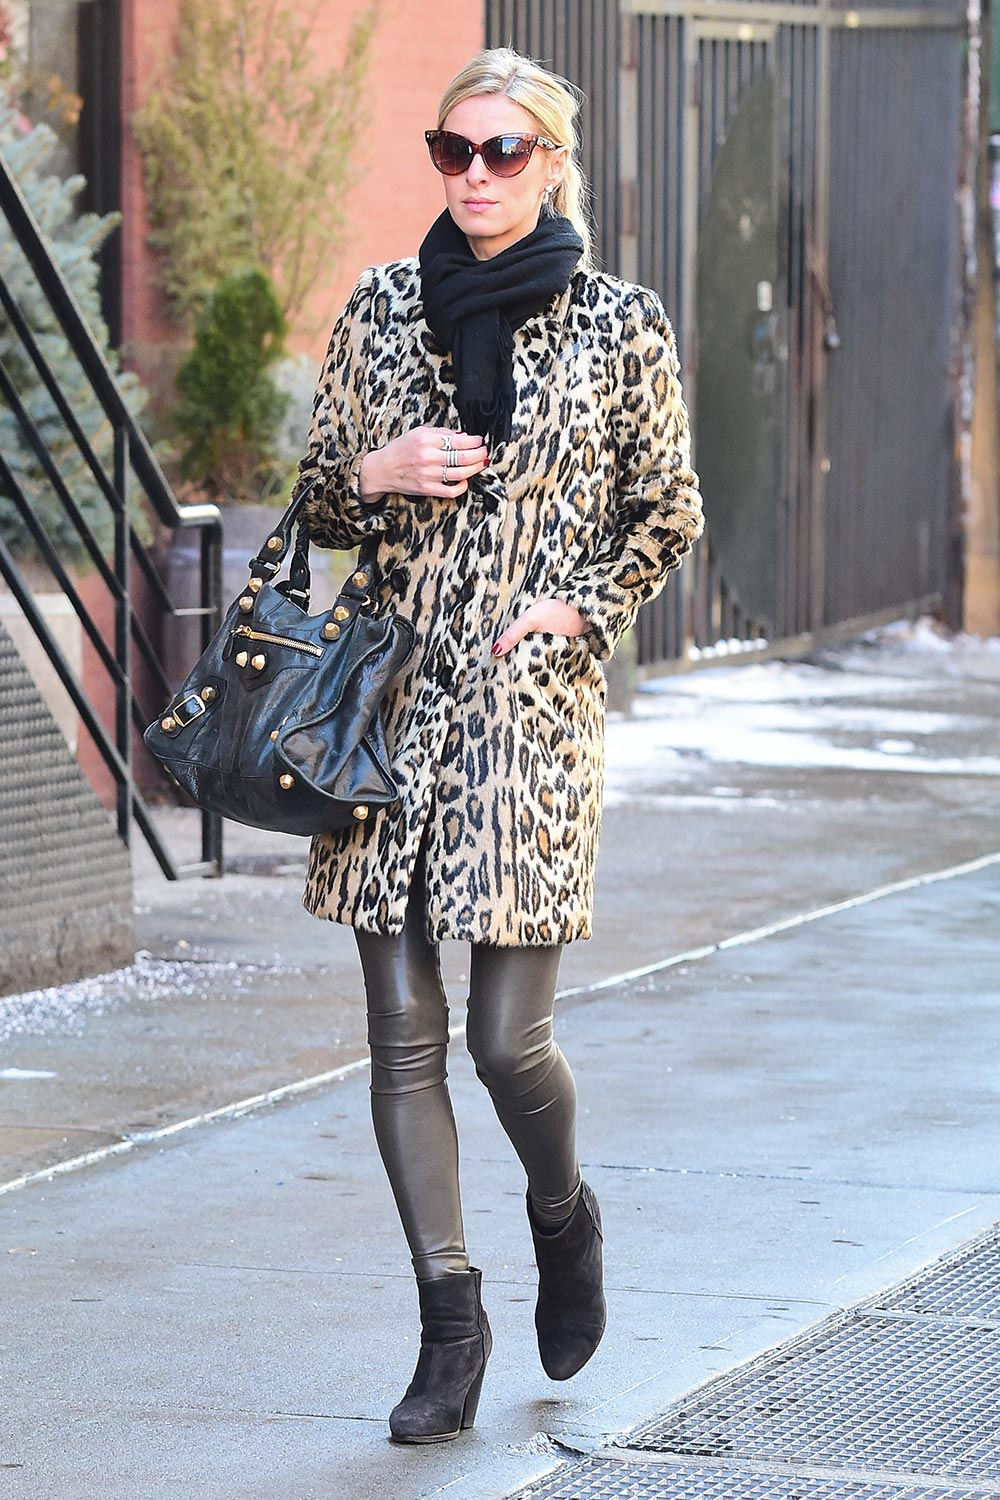 Nicky Hilton is seen walking in Soho